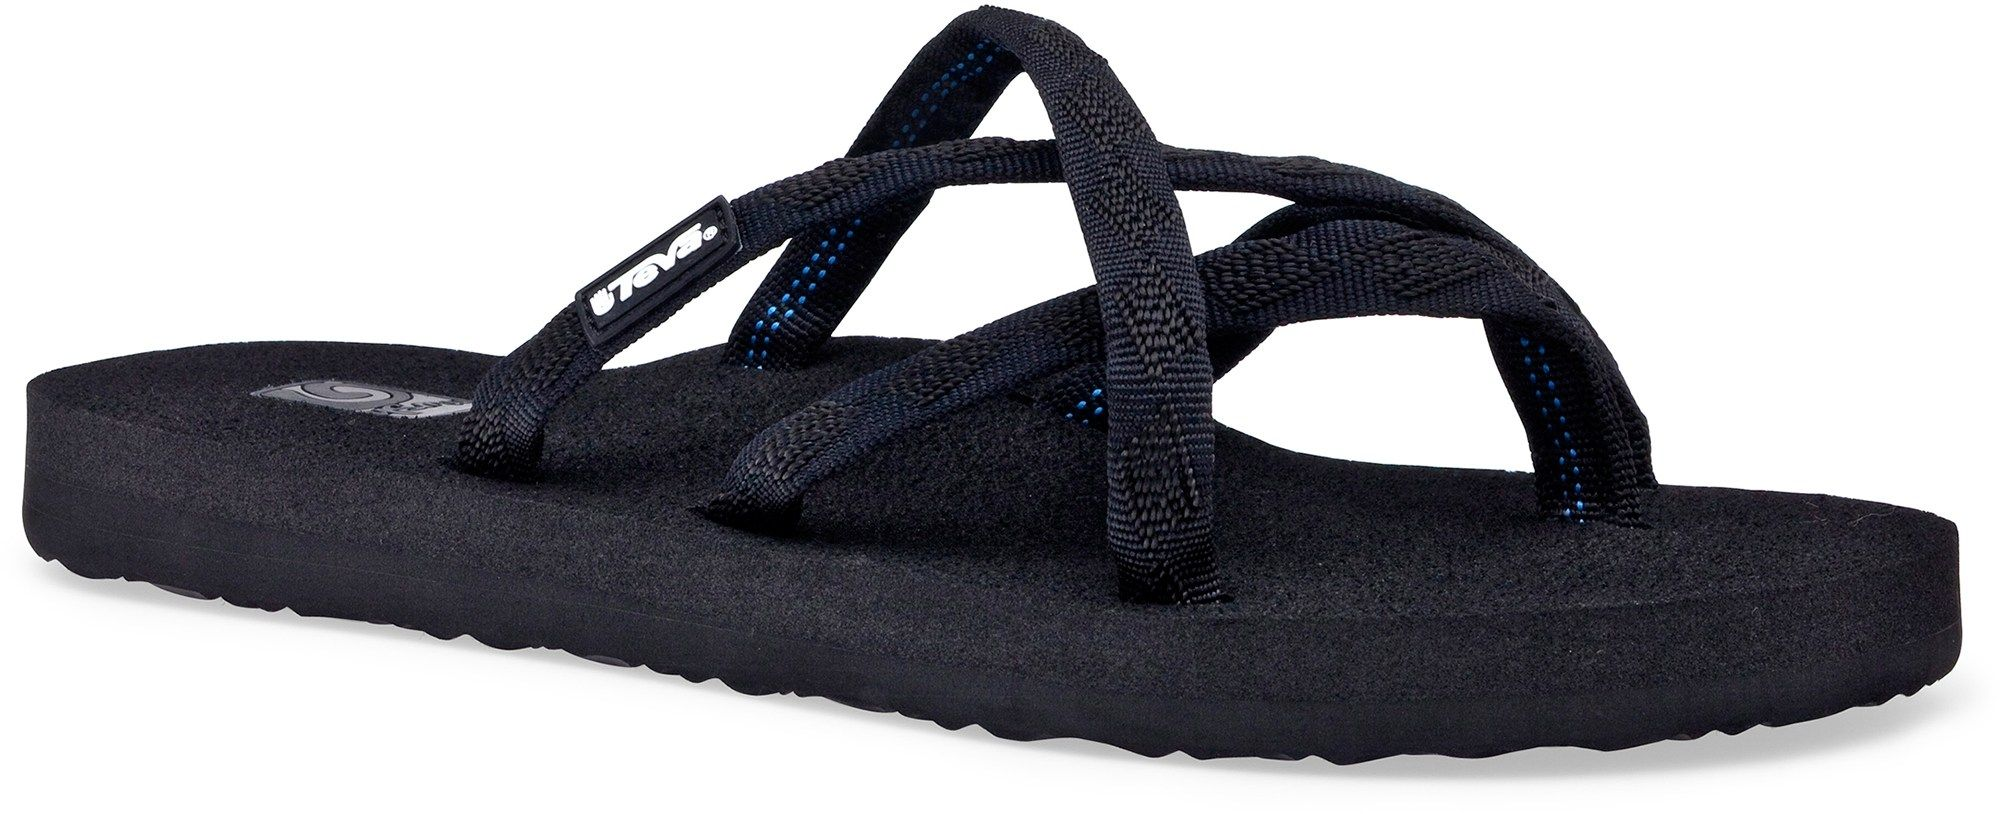 Love my teva flip flops.  So inexpensive and so comfortable.  I have them in multiple colors.